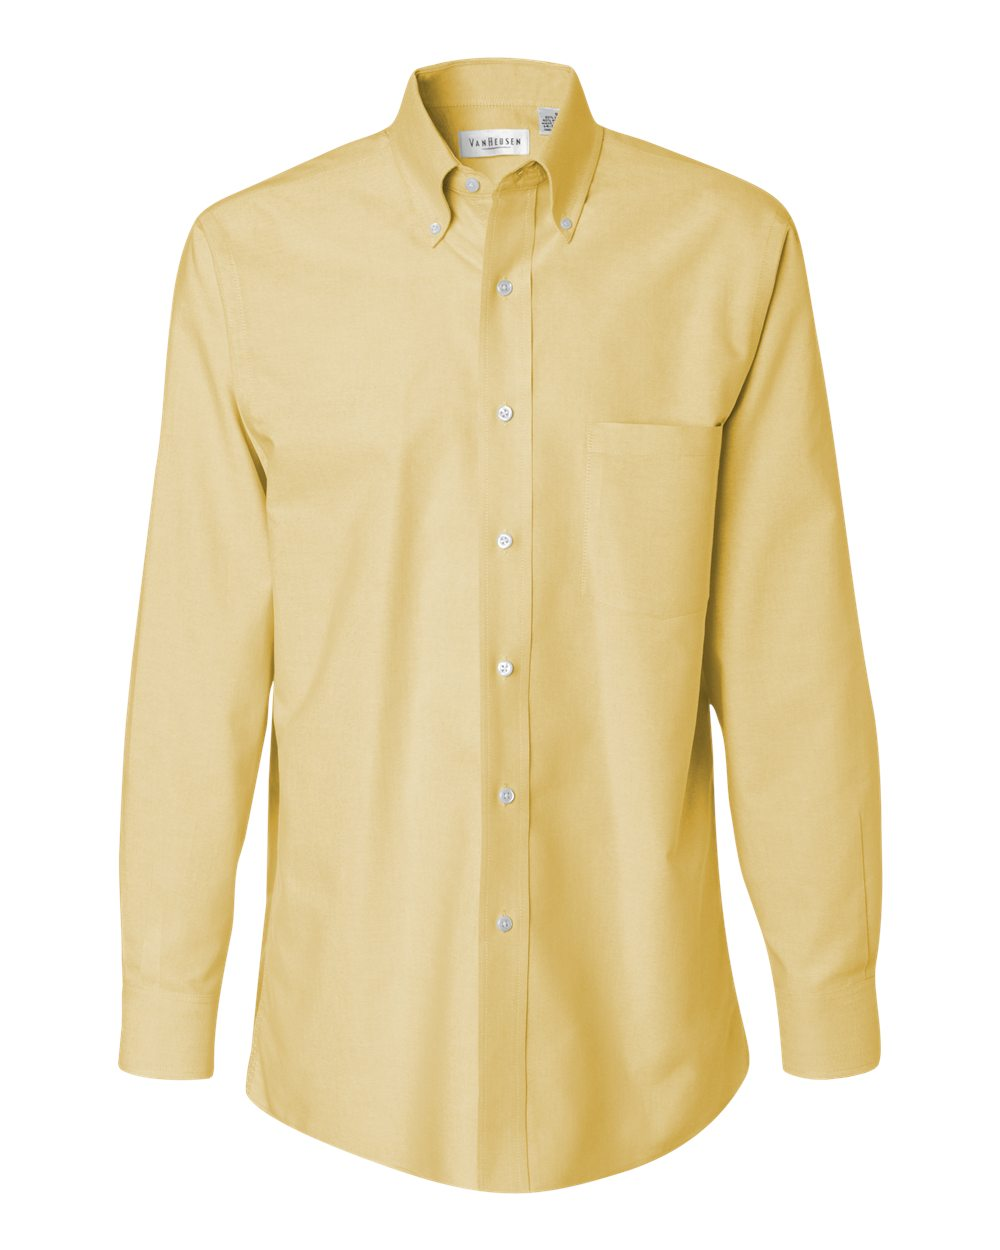 Van Heusen Men's Long Sleeve Oxford Shirt. 13V0040.